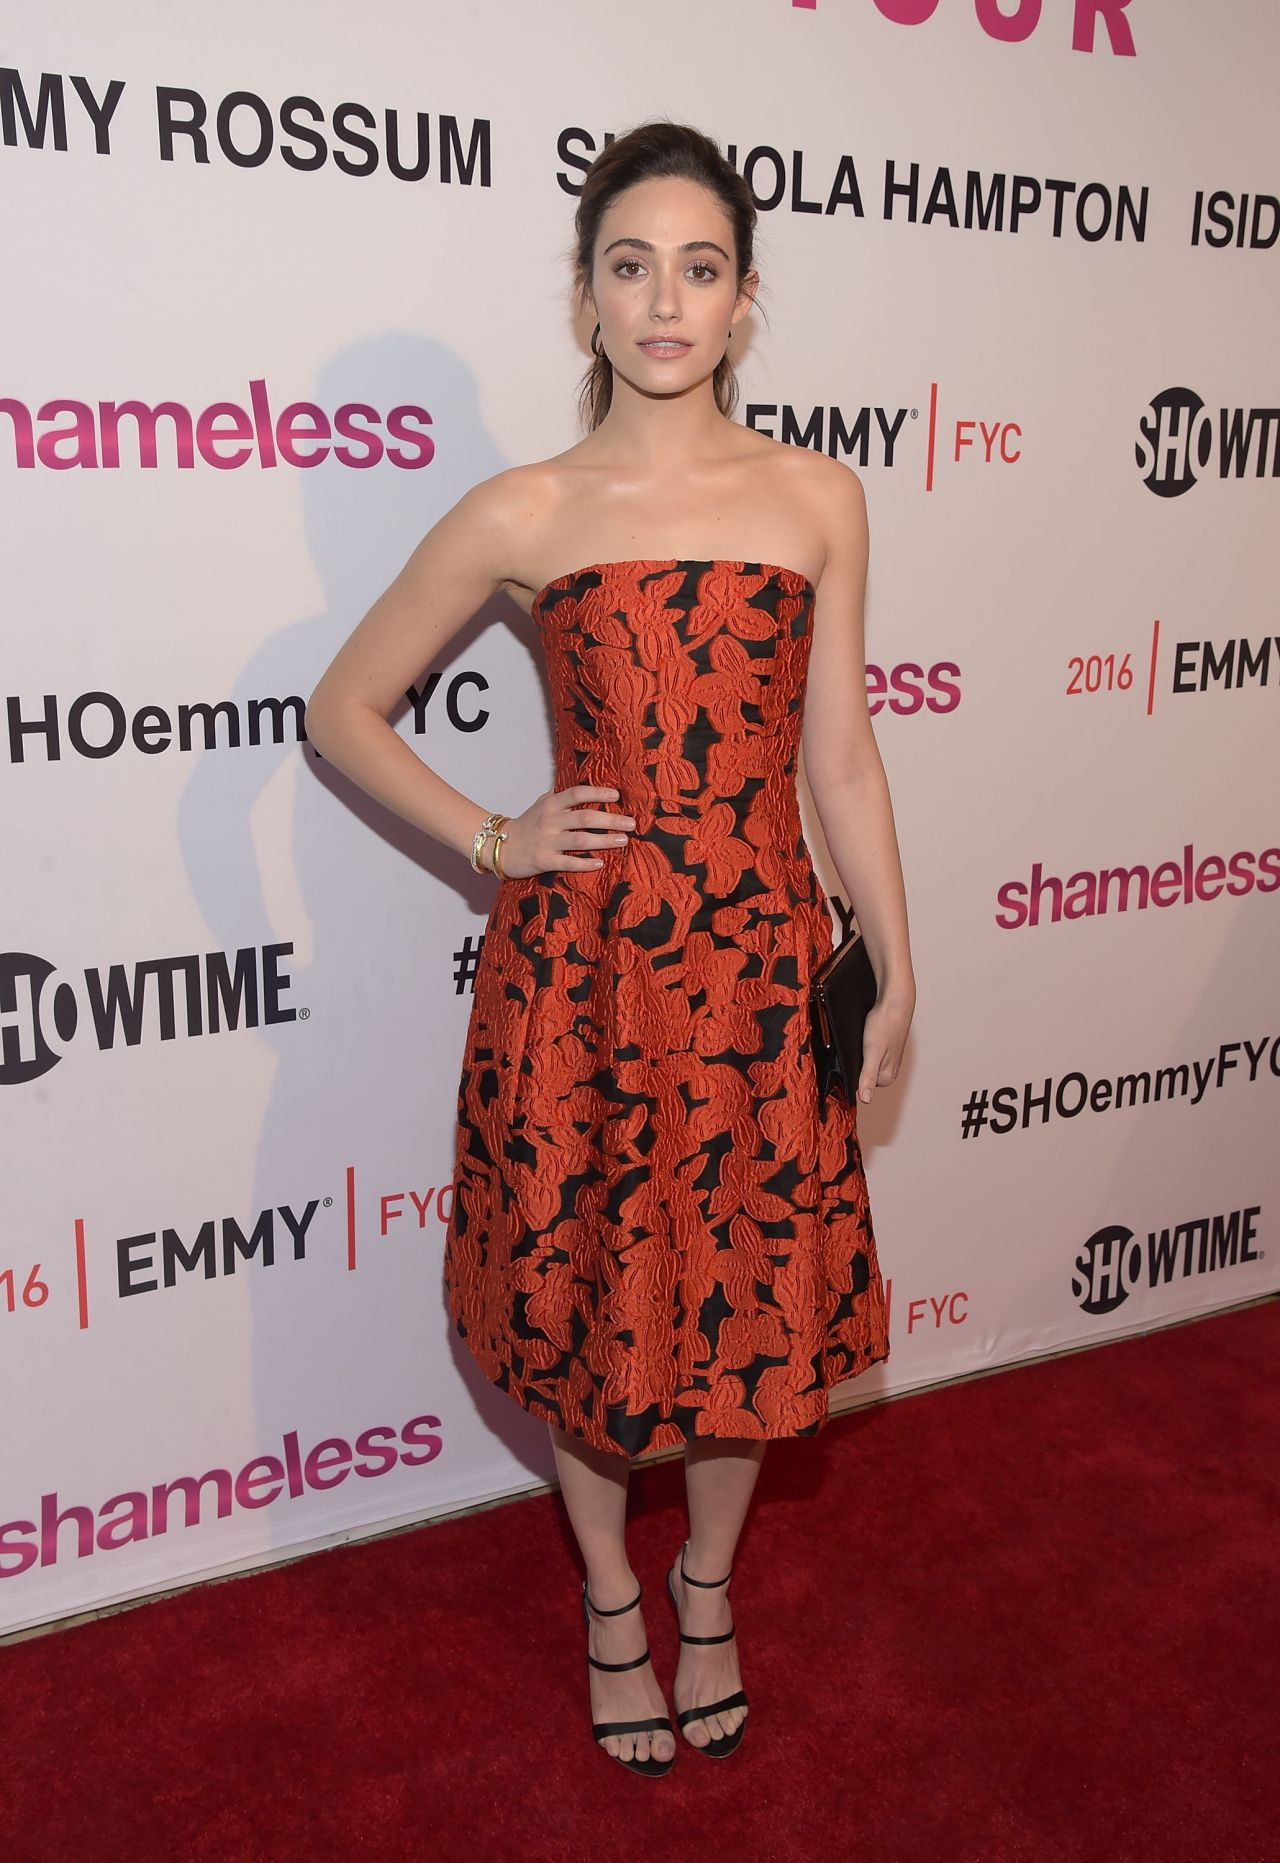 emmy-rossum-screening-and-panel-discussion-with-the-women-of-shameless-in-west-hollywood-1